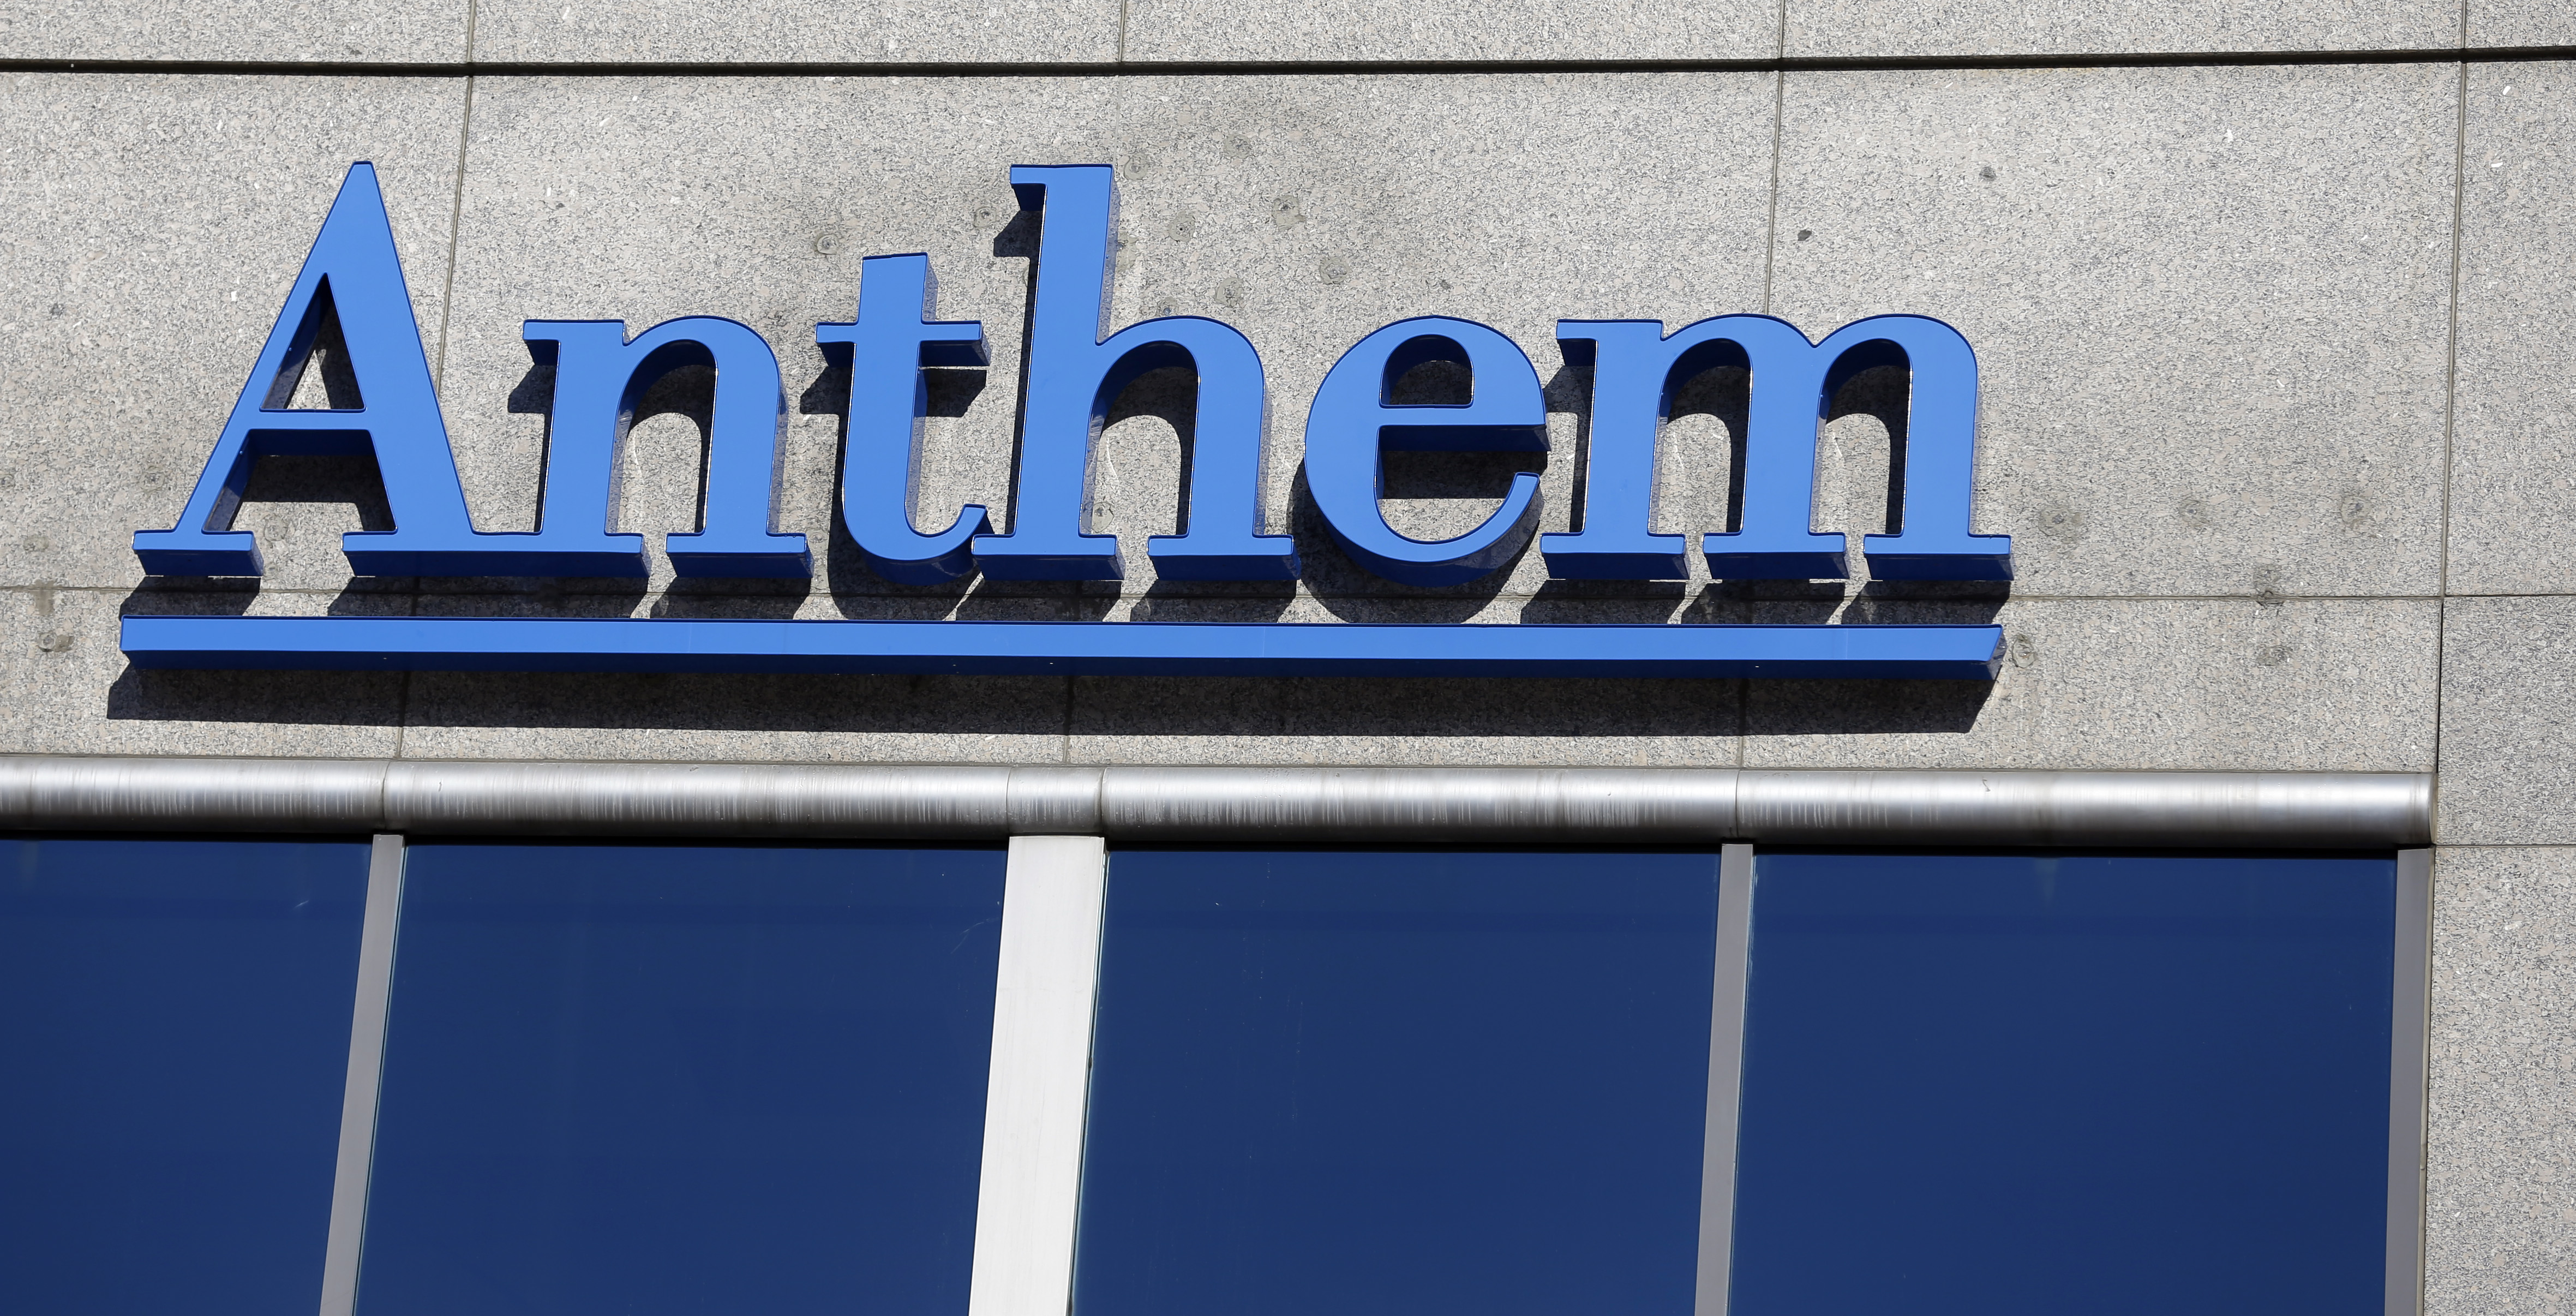 The Anthem logo hangs at the health insurer's corporate headquarters in Indianapolis, Thursday, Feb. 5, 2015. Hackers broke into the company's database storing information for about 80 million people in an attack bound to stoke fears many Americans have about the privacy of their most sensitive information.